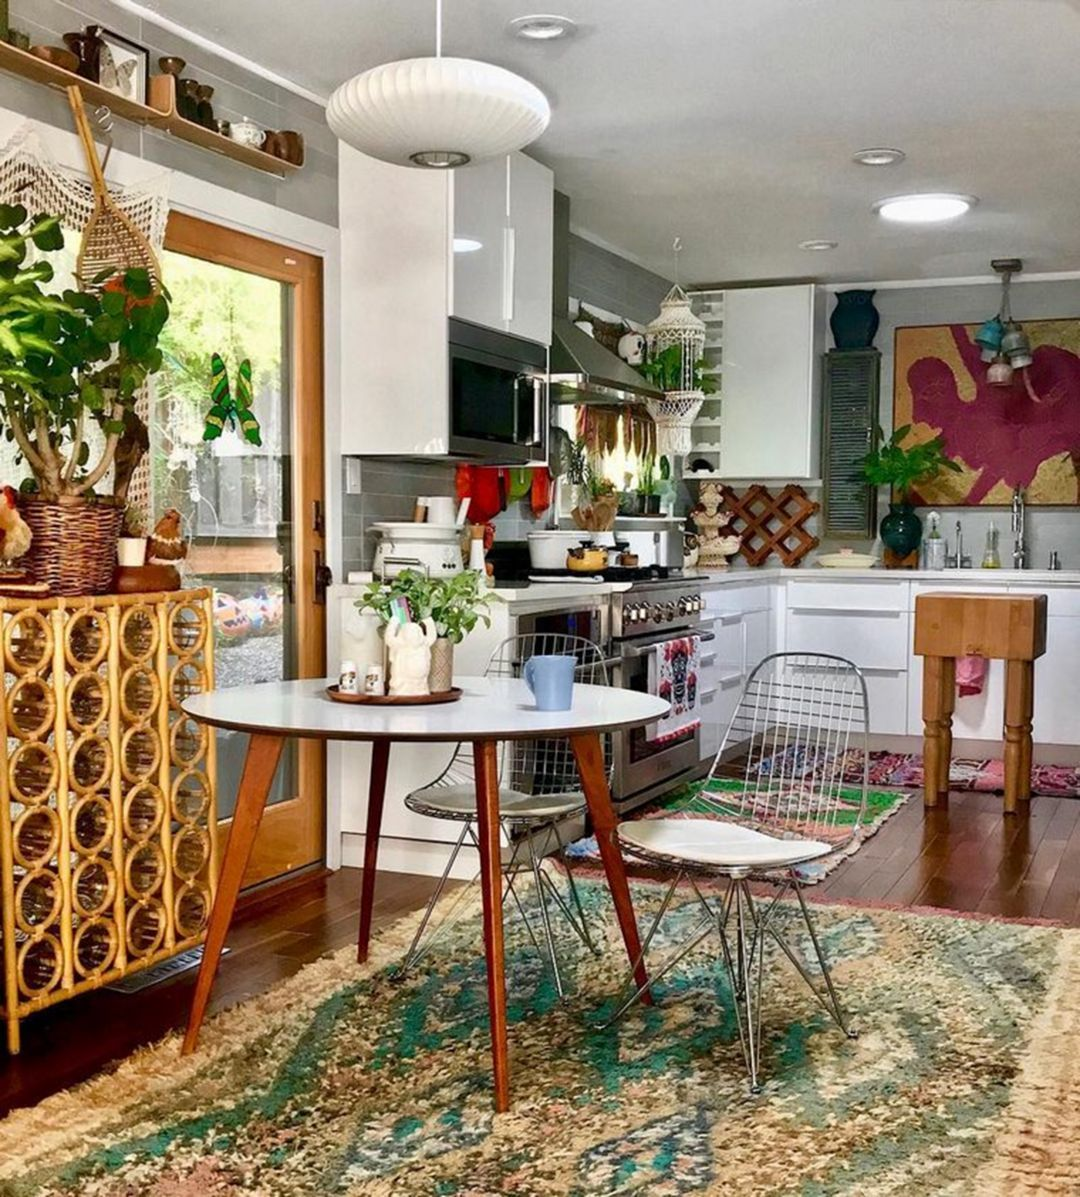 epic 10 beautiful bohemian kitchen interior designs with good arrangements https 24 moolton co on boho chic home decor kitchen id=61177